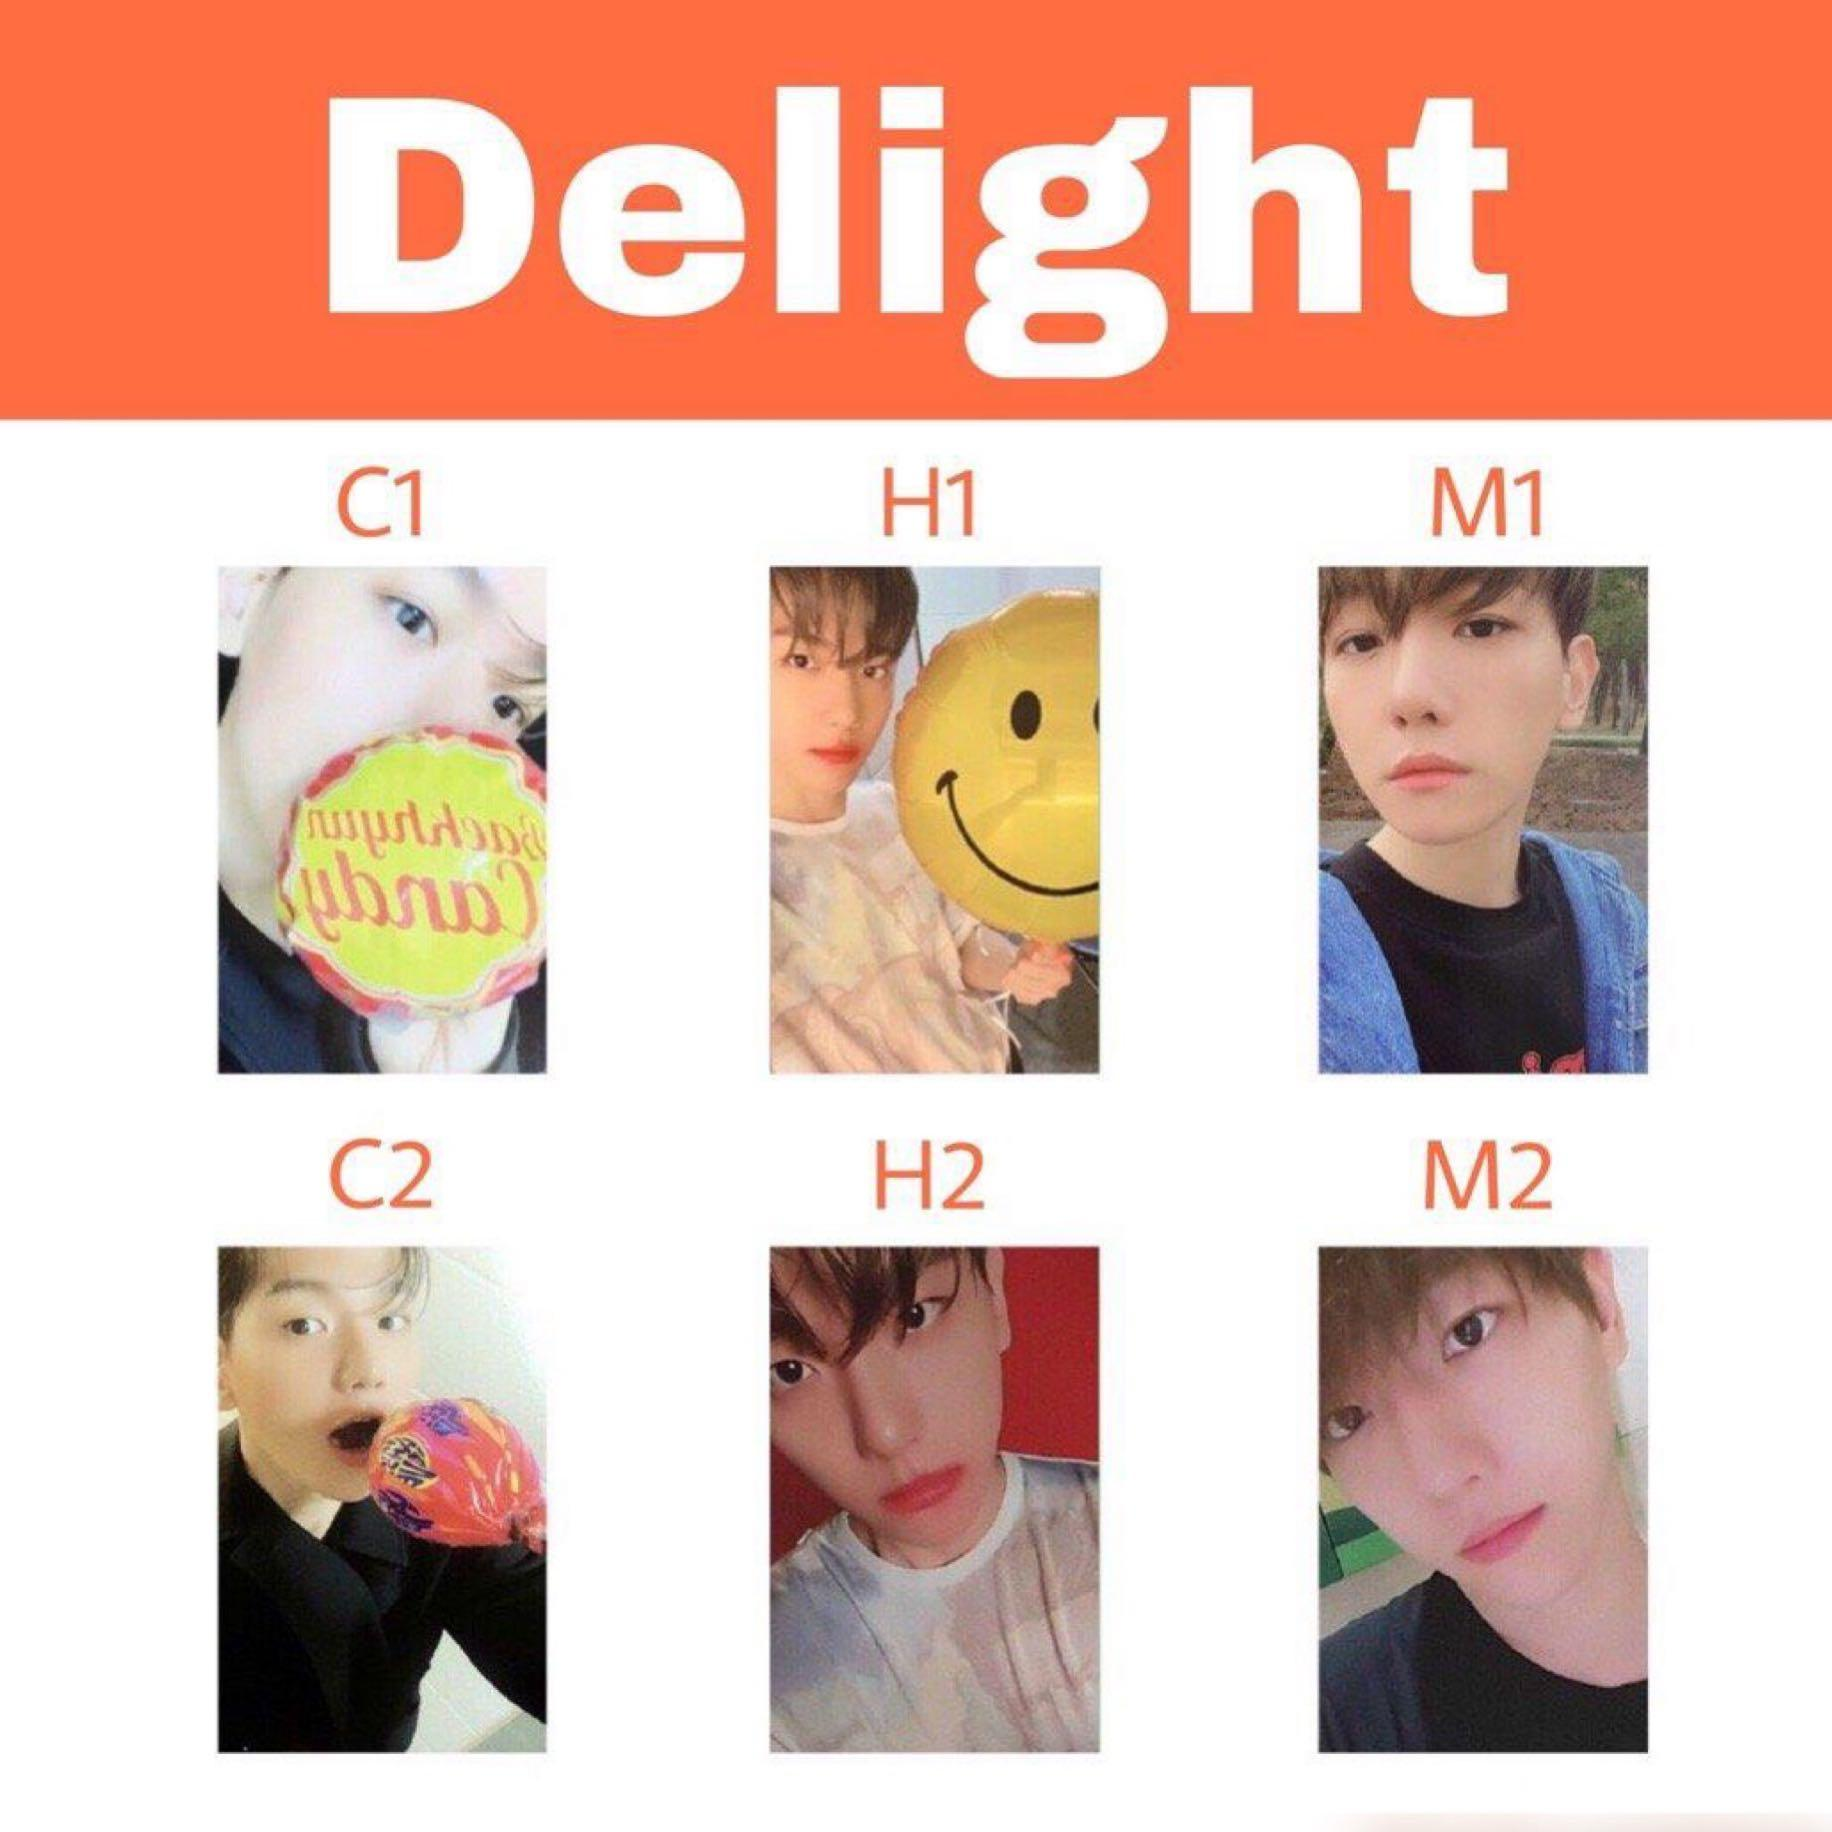 baekhyun delight photocard 1592232124 0cd6ca52 progressive